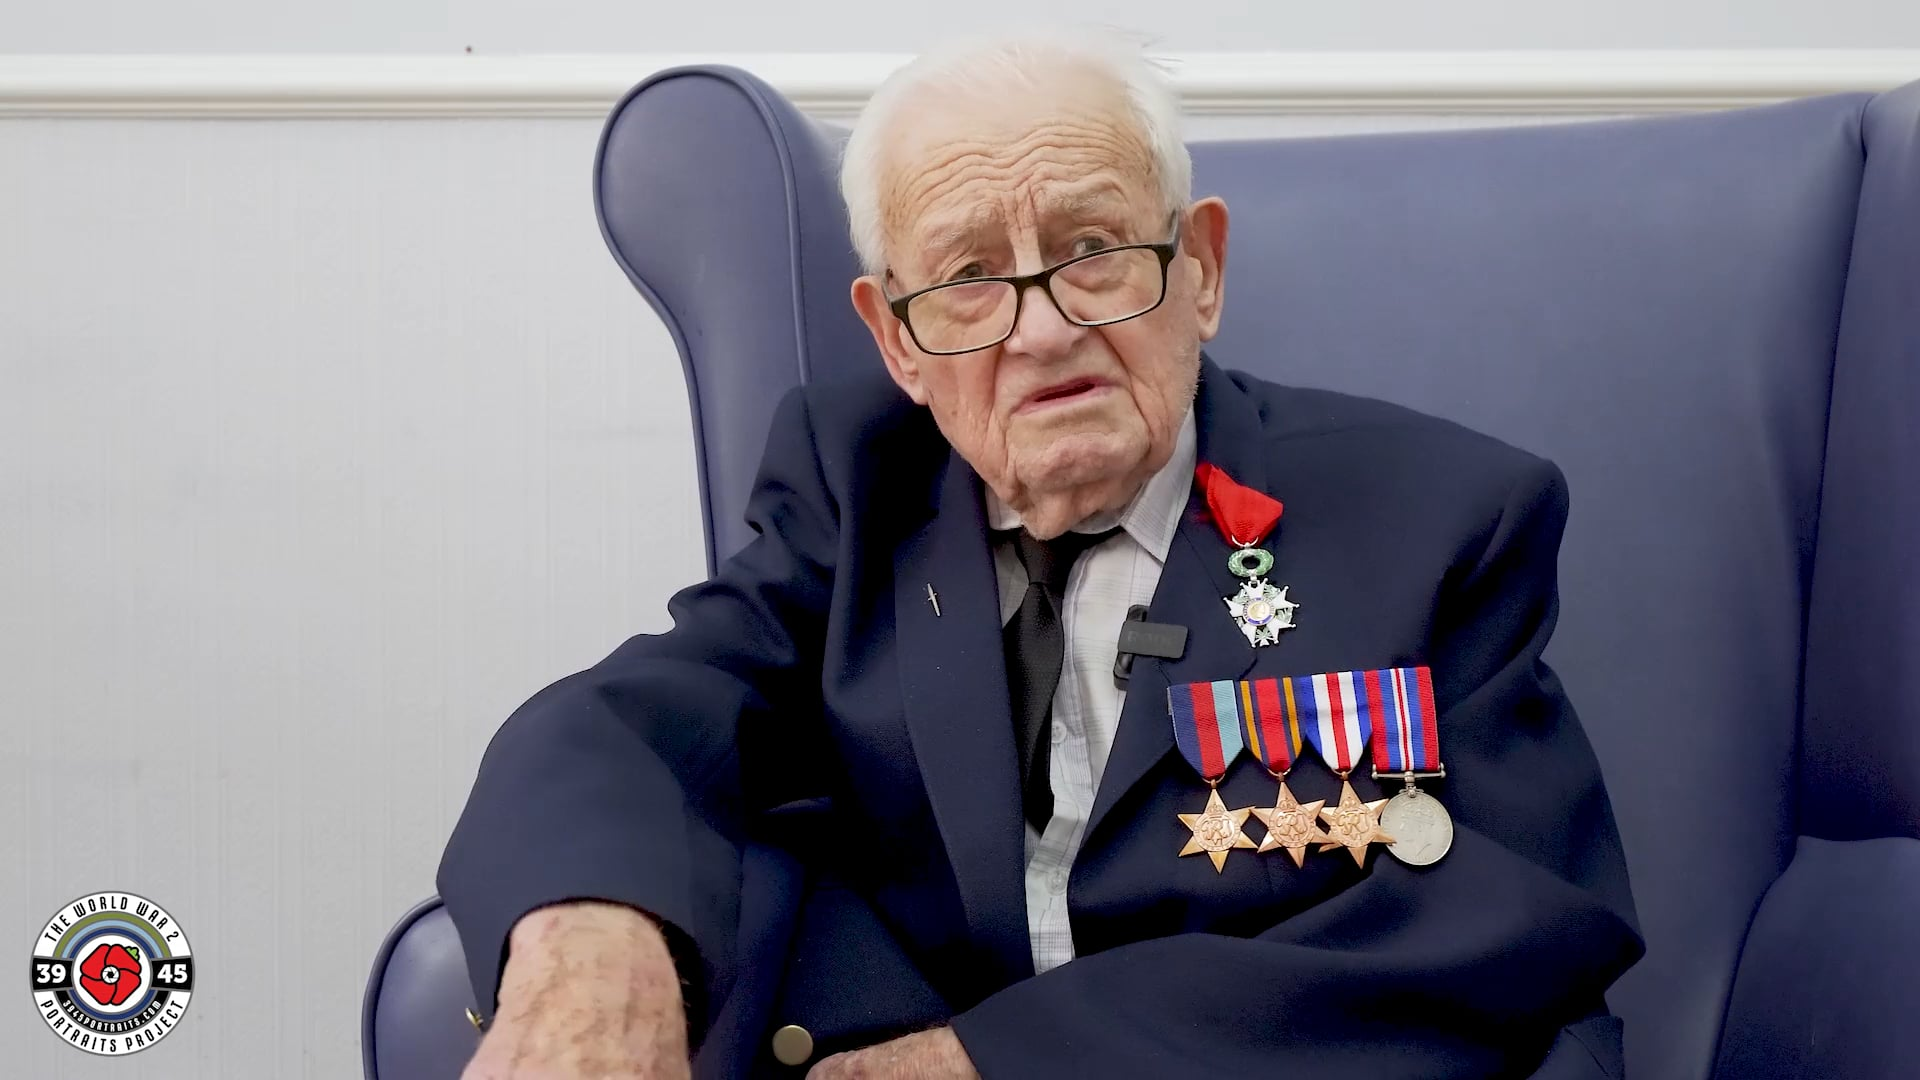 Ken Docksey: Becoming a Royal Marine and D-Day